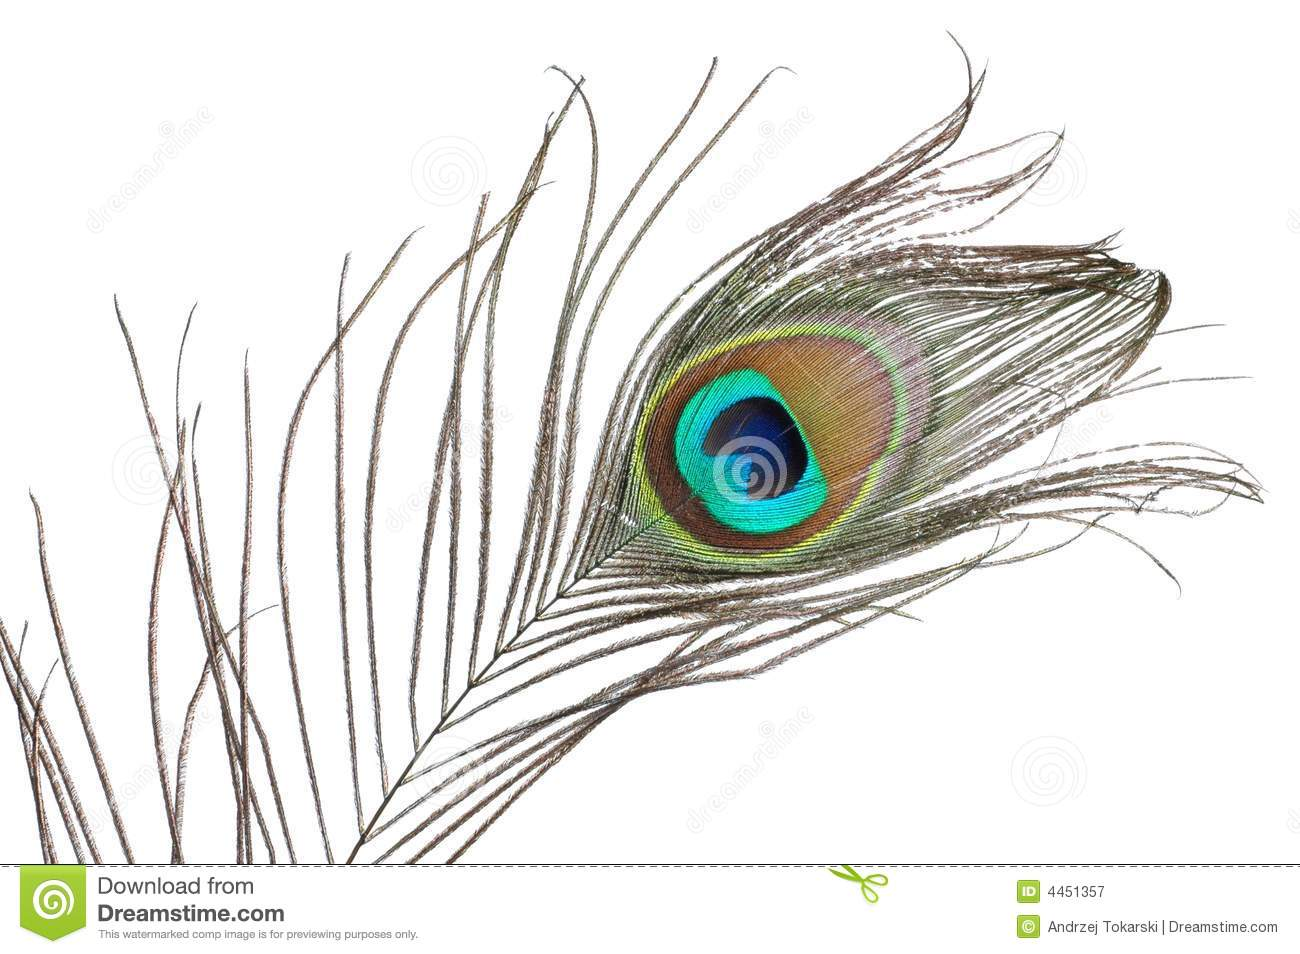 Peacock Feather Royalty Free Stock Photography - Image: 4451357